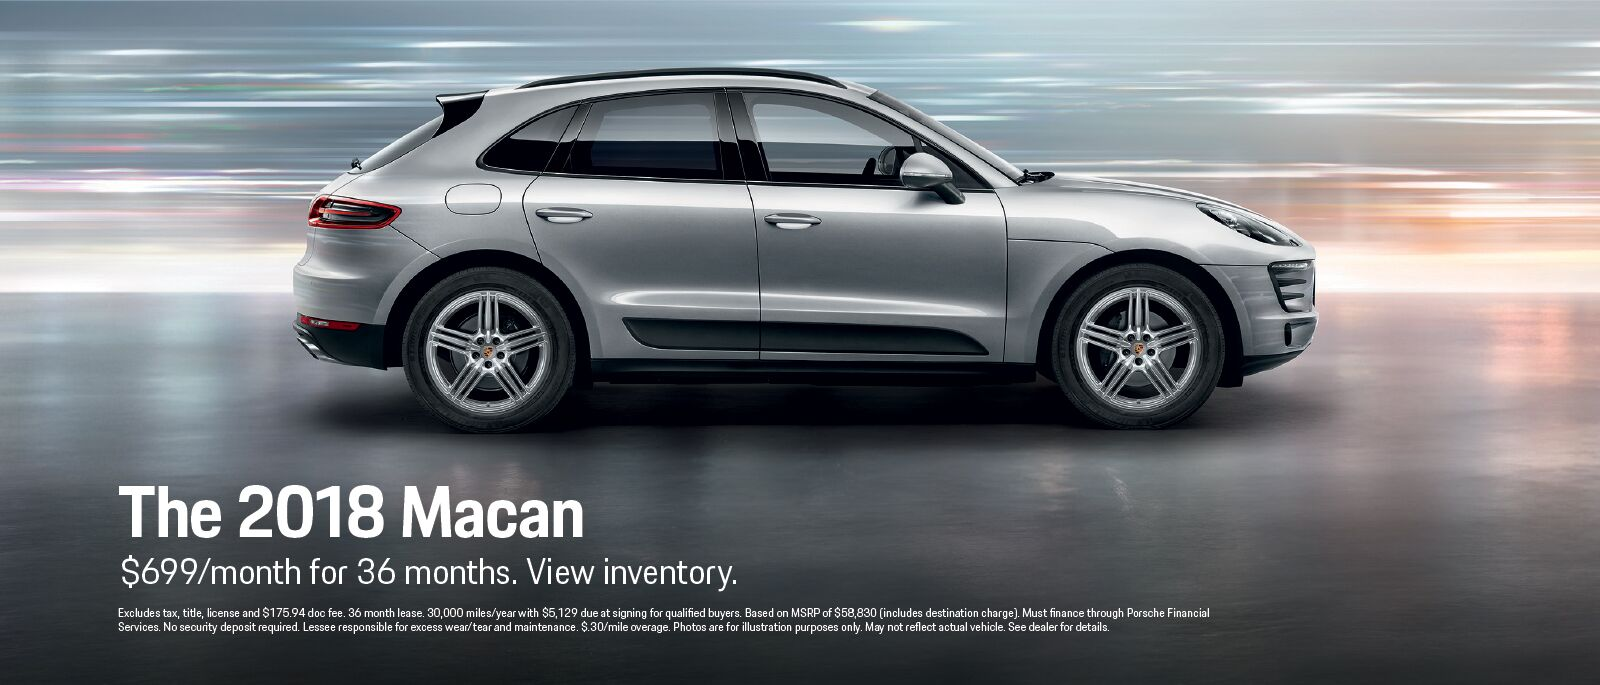 The 2018 Macan